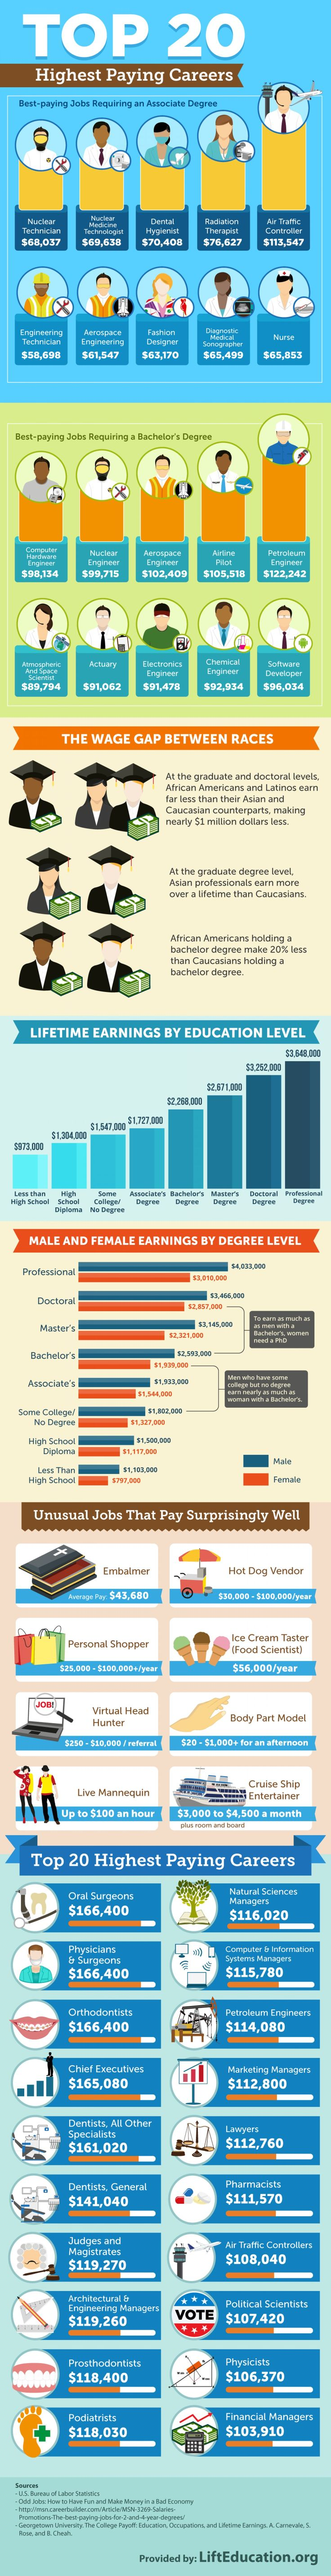 Top 20 highest paying careers | Visual.ly